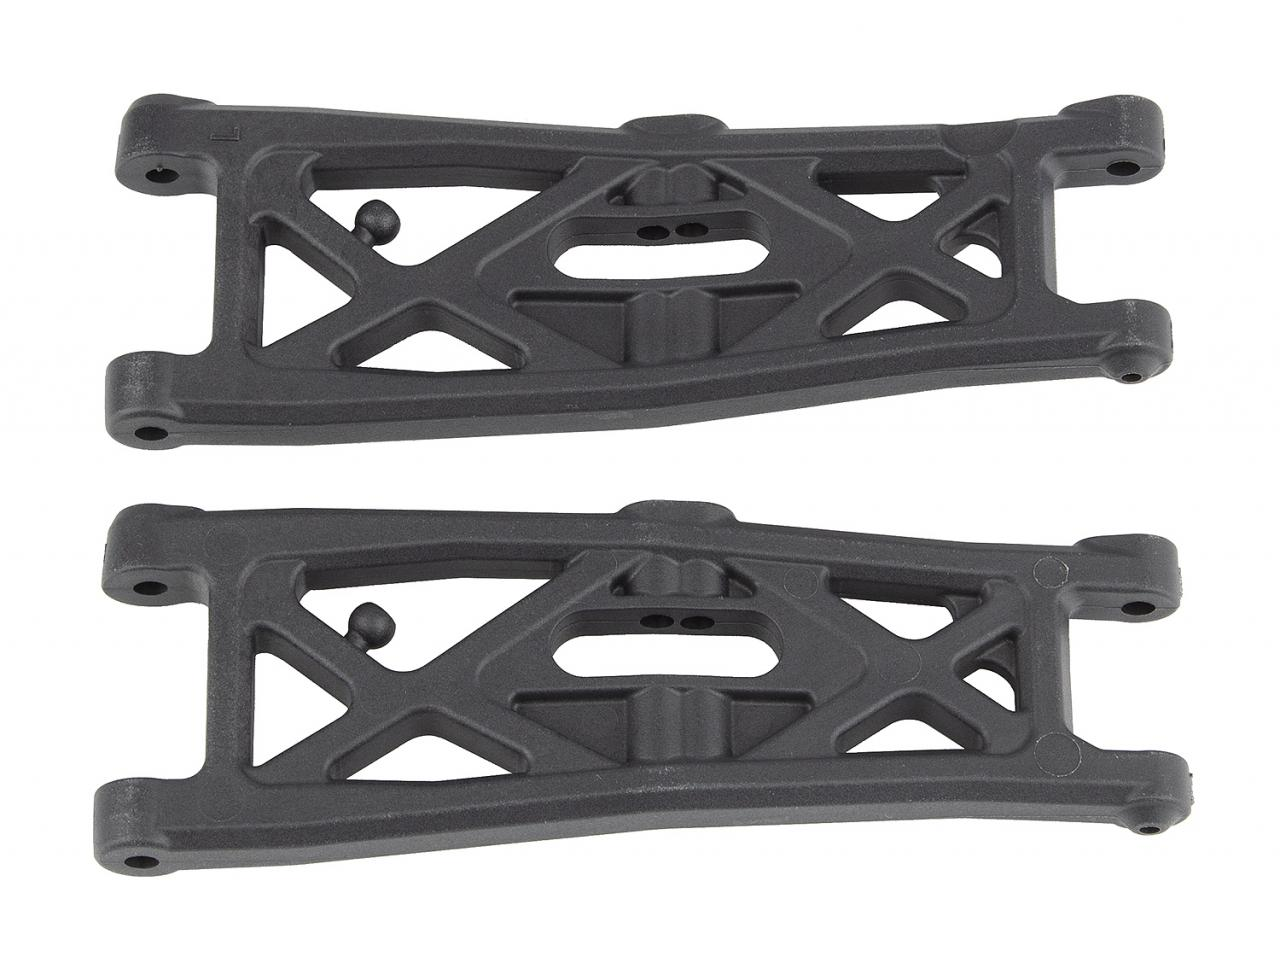 photo of #71139 RC10T6.2 FT Front Suspension Arms, gull wing, carbon fiber